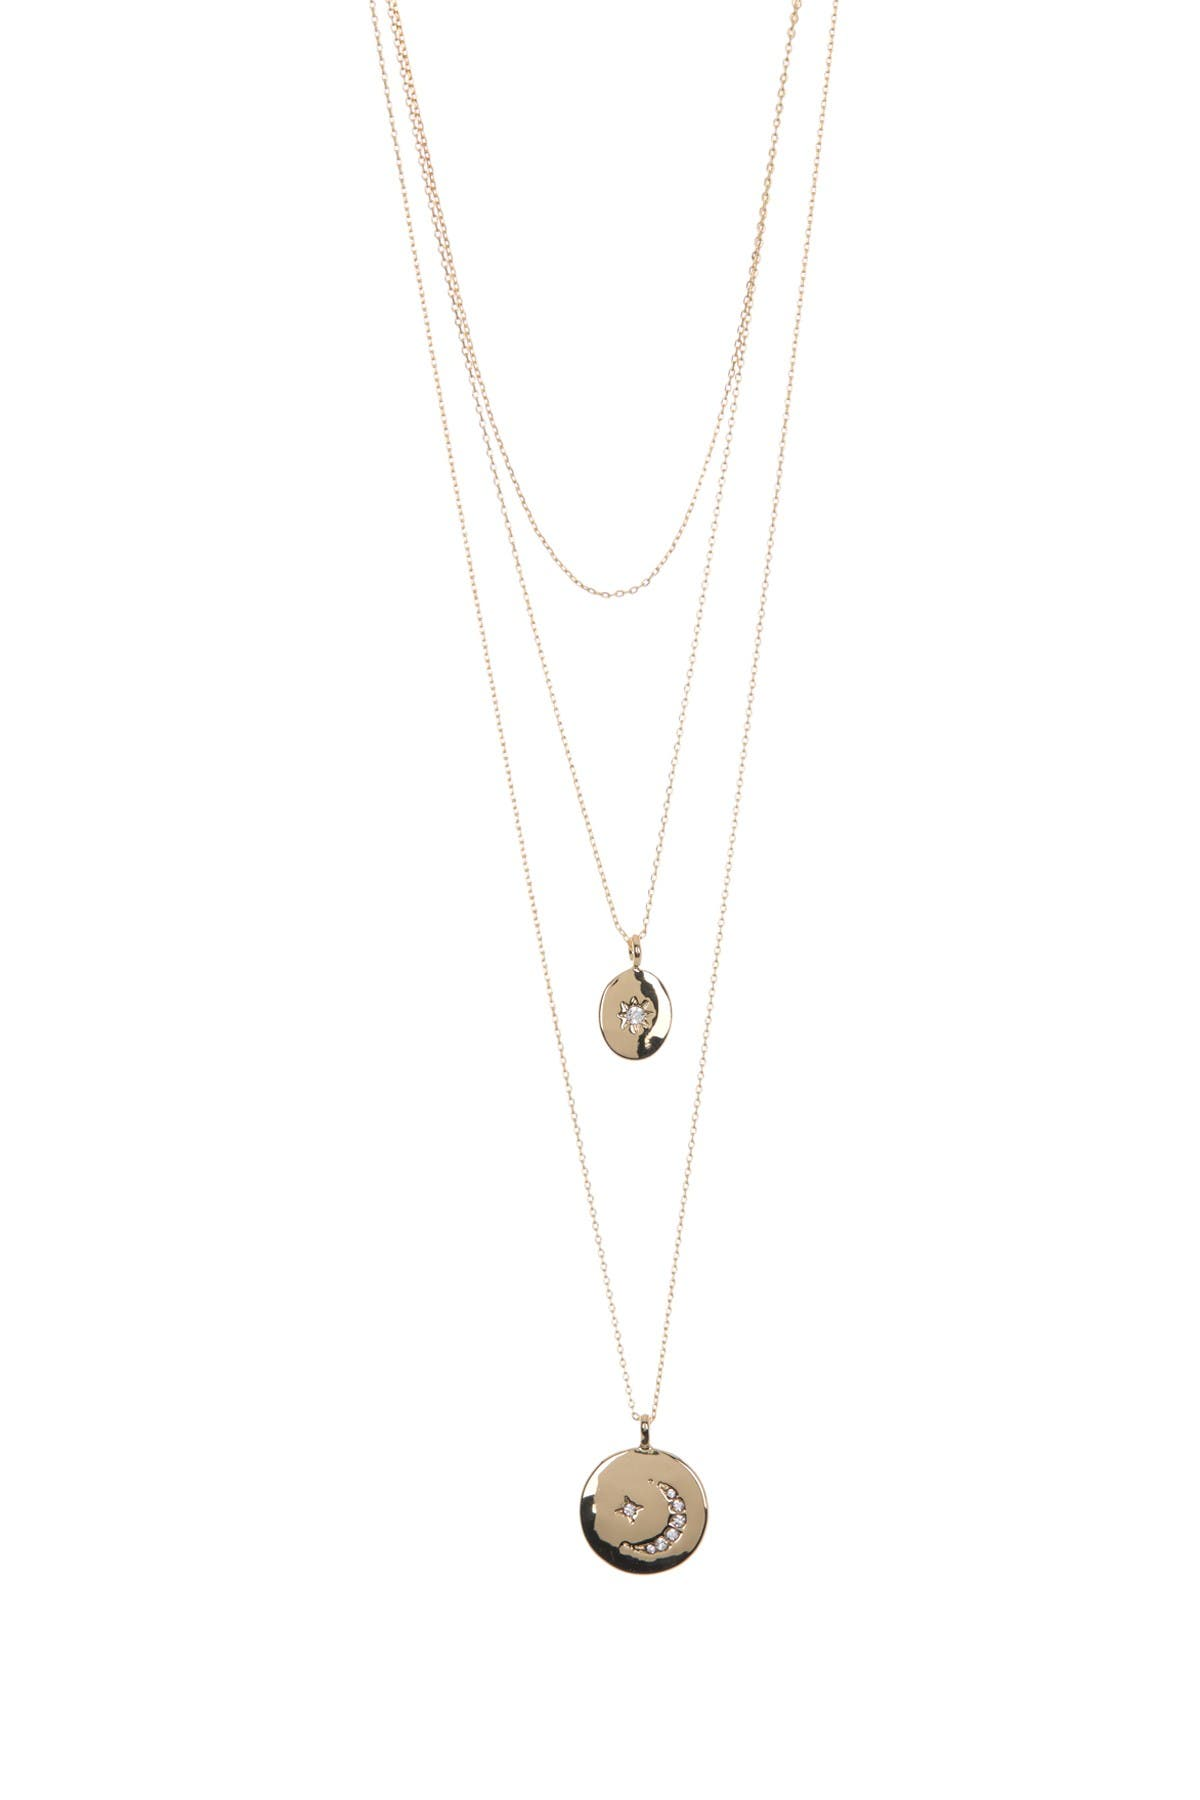 Image of AREA STARS Bling Disc Layered Necklace Set